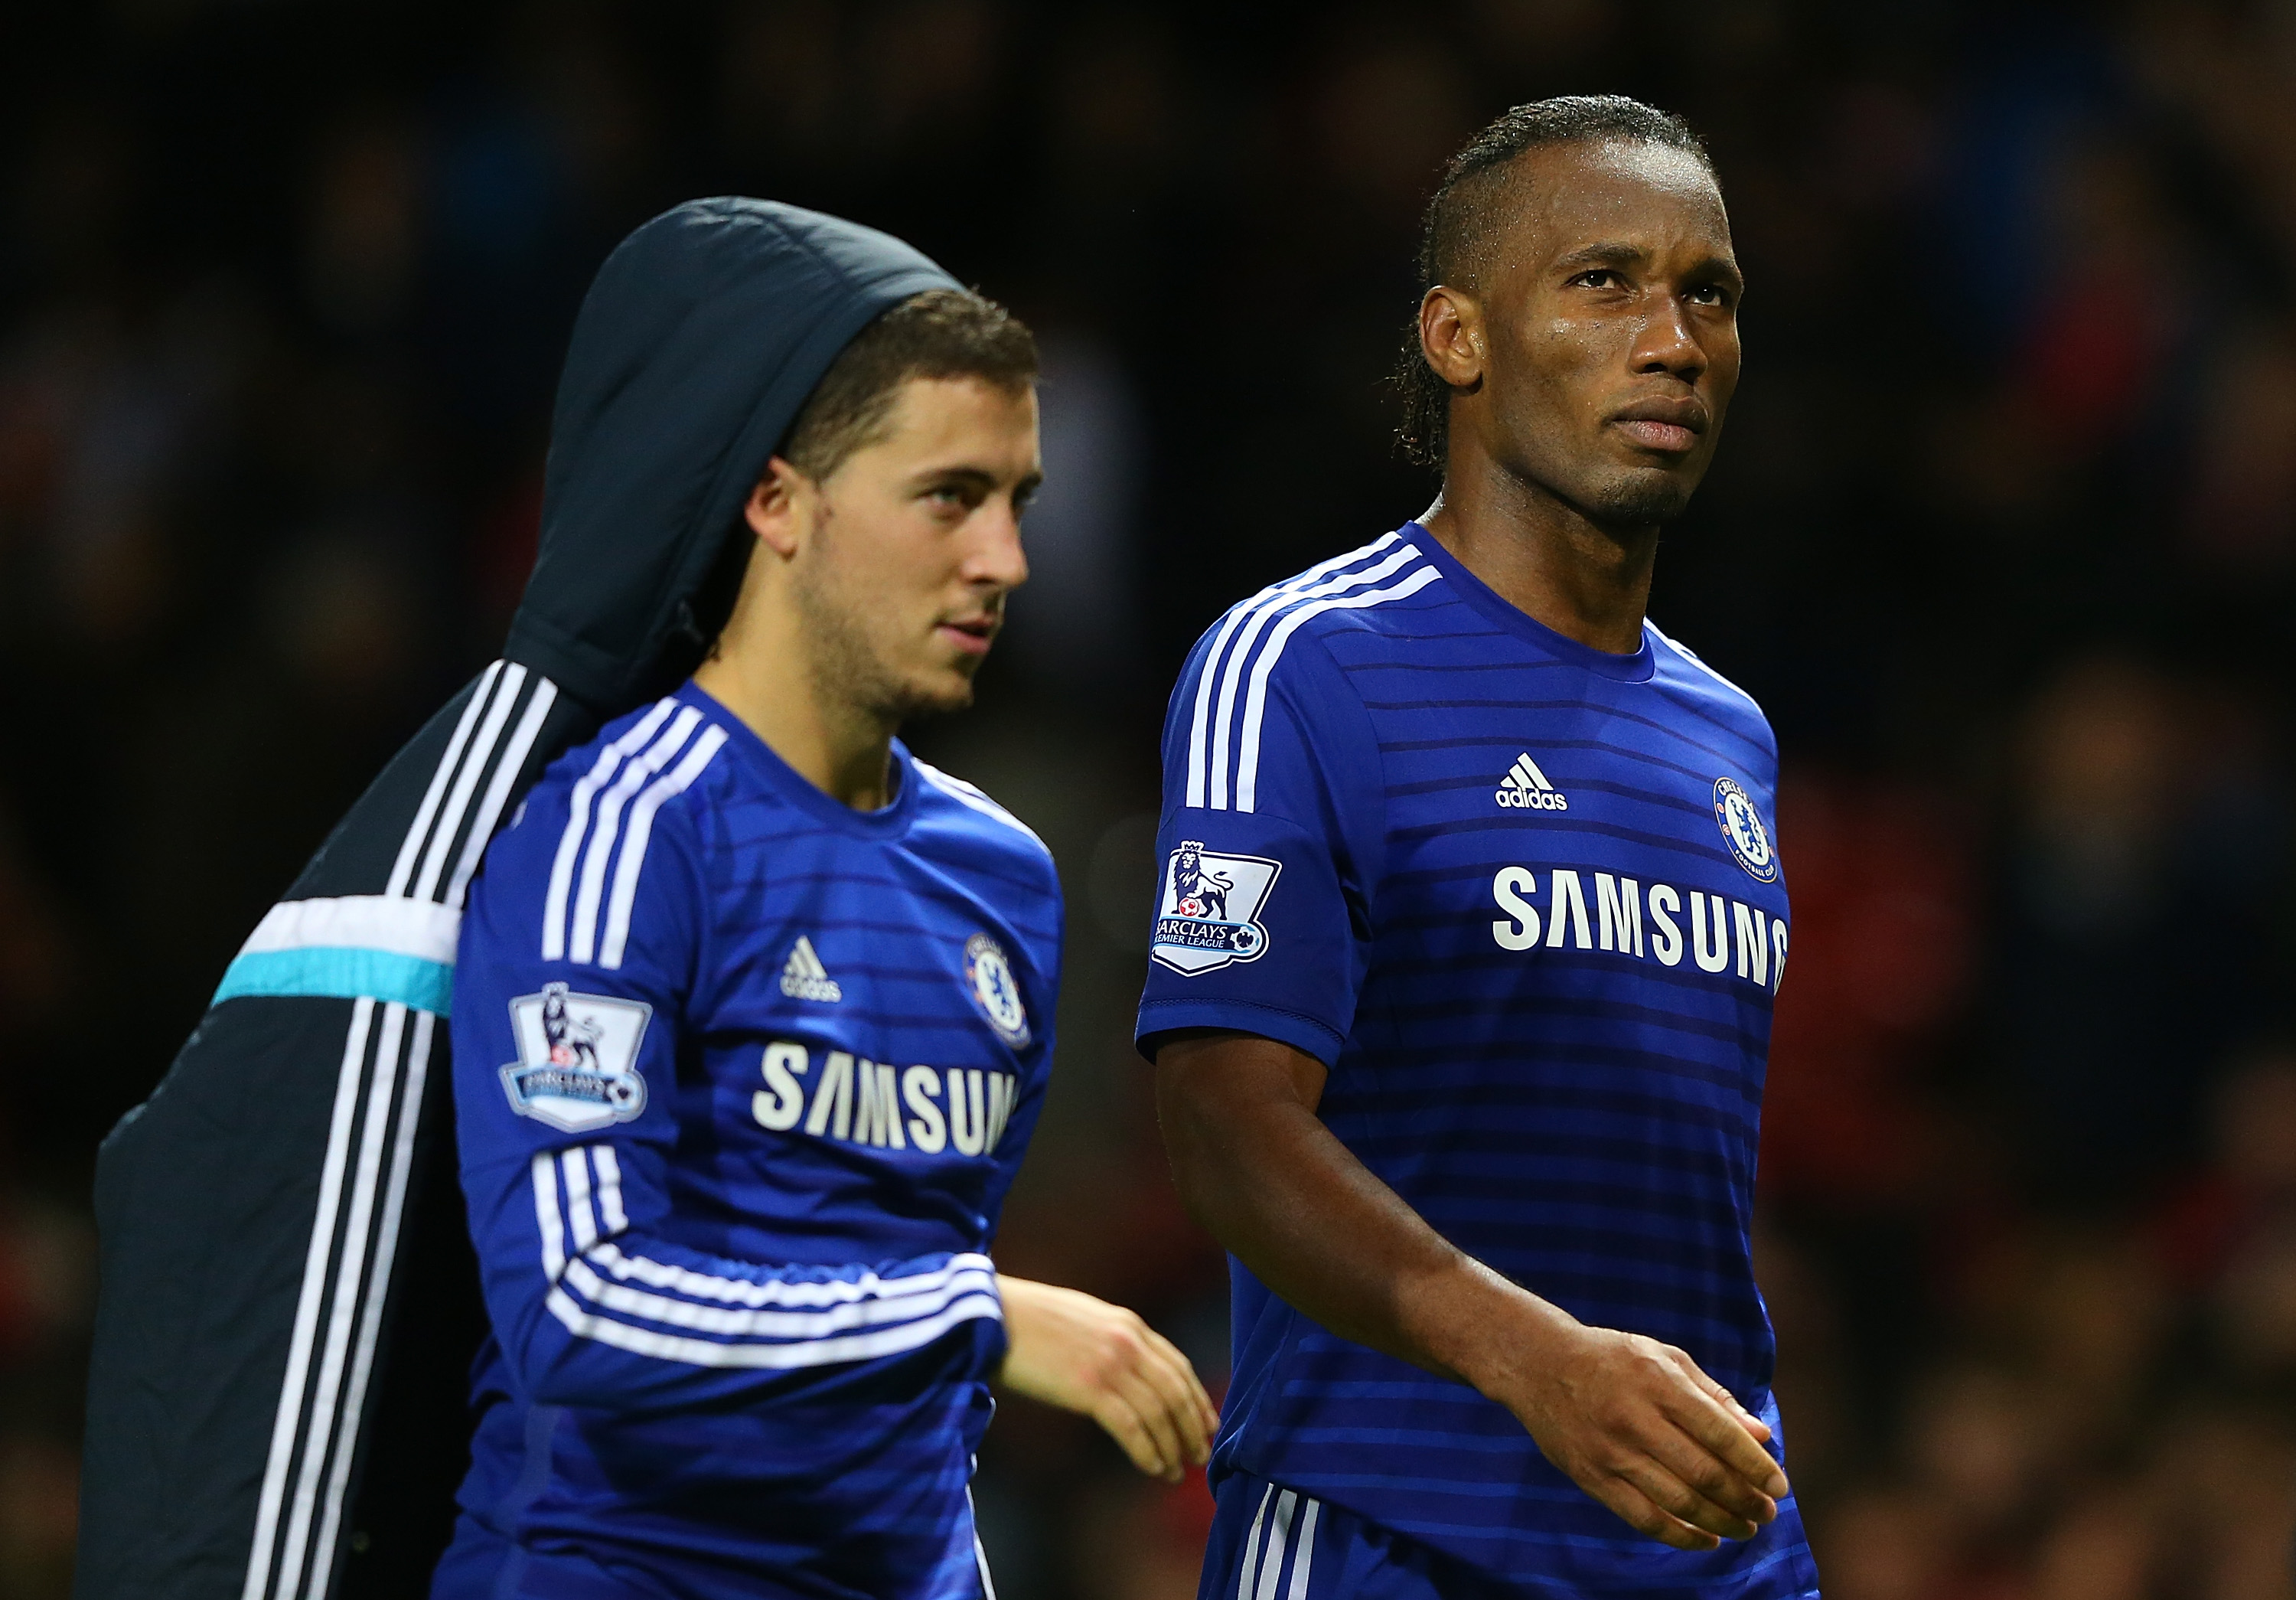 Didier Drogba urges Eden Hazard to stay and write his own Chelsea legend